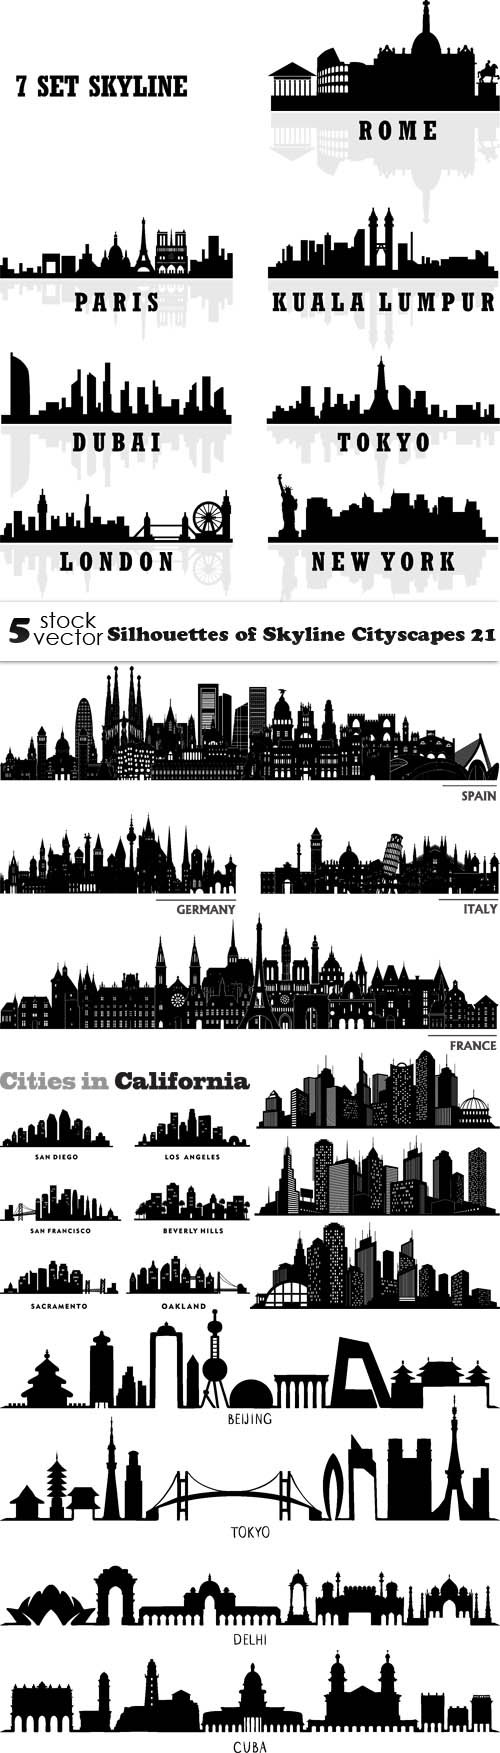 Vectors - Silhouettes of Skyline Cityscapes 21